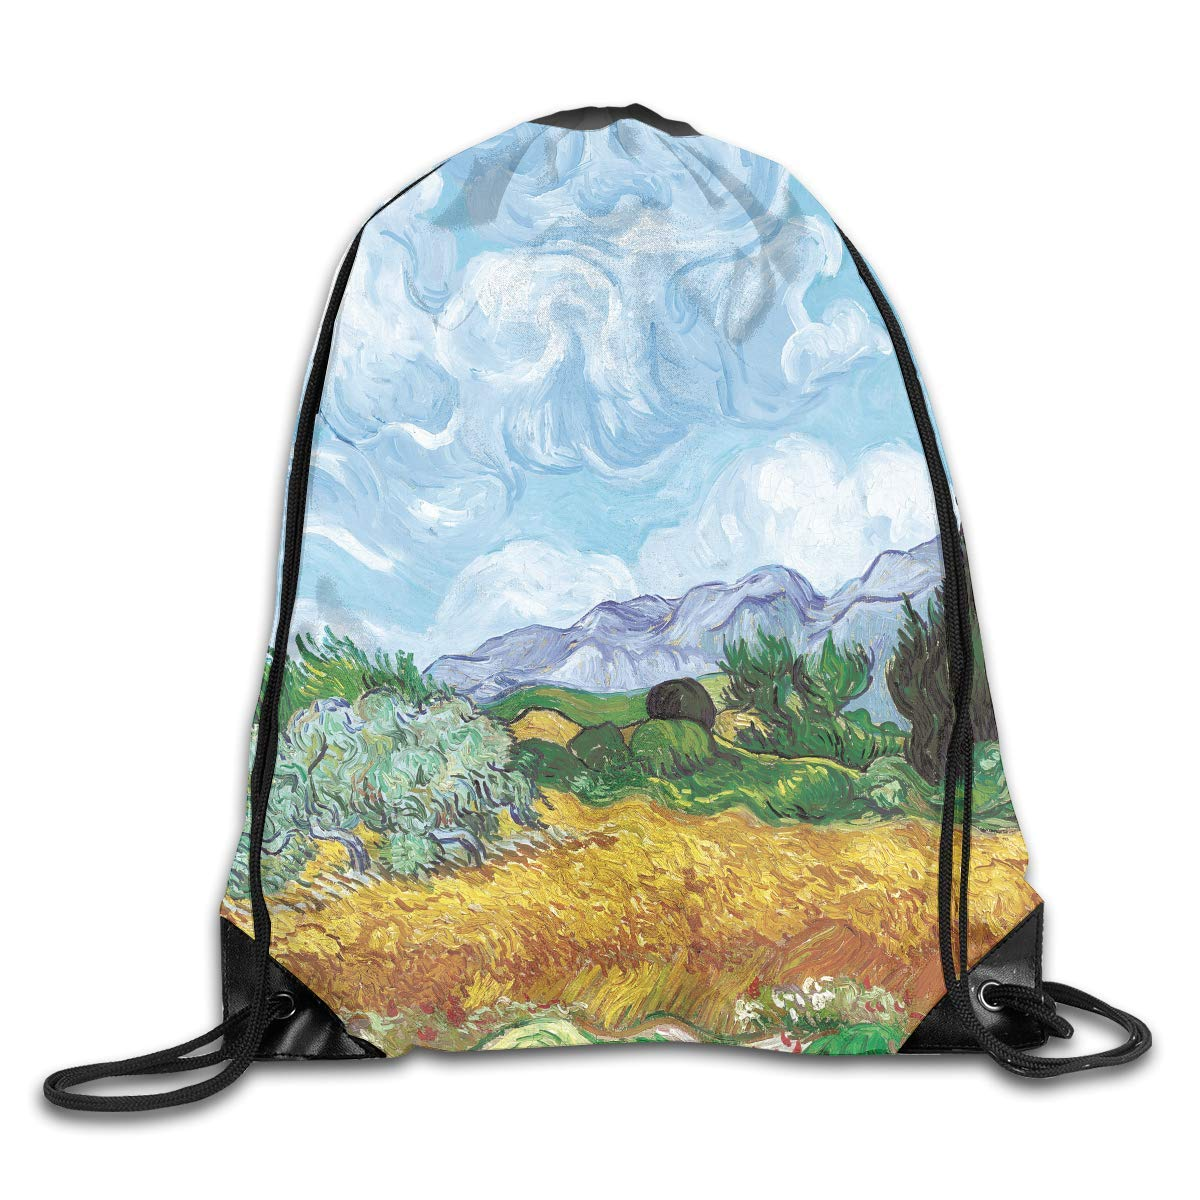 Liumiang Sacs à Dos,Sacs de Sport,Sacs à Cordon, Eco-Friendly Pirnt Wheat Field and Reaper Exotic Drawstring Bag for Traveling Or Shopping Casual Daypacks School Bags